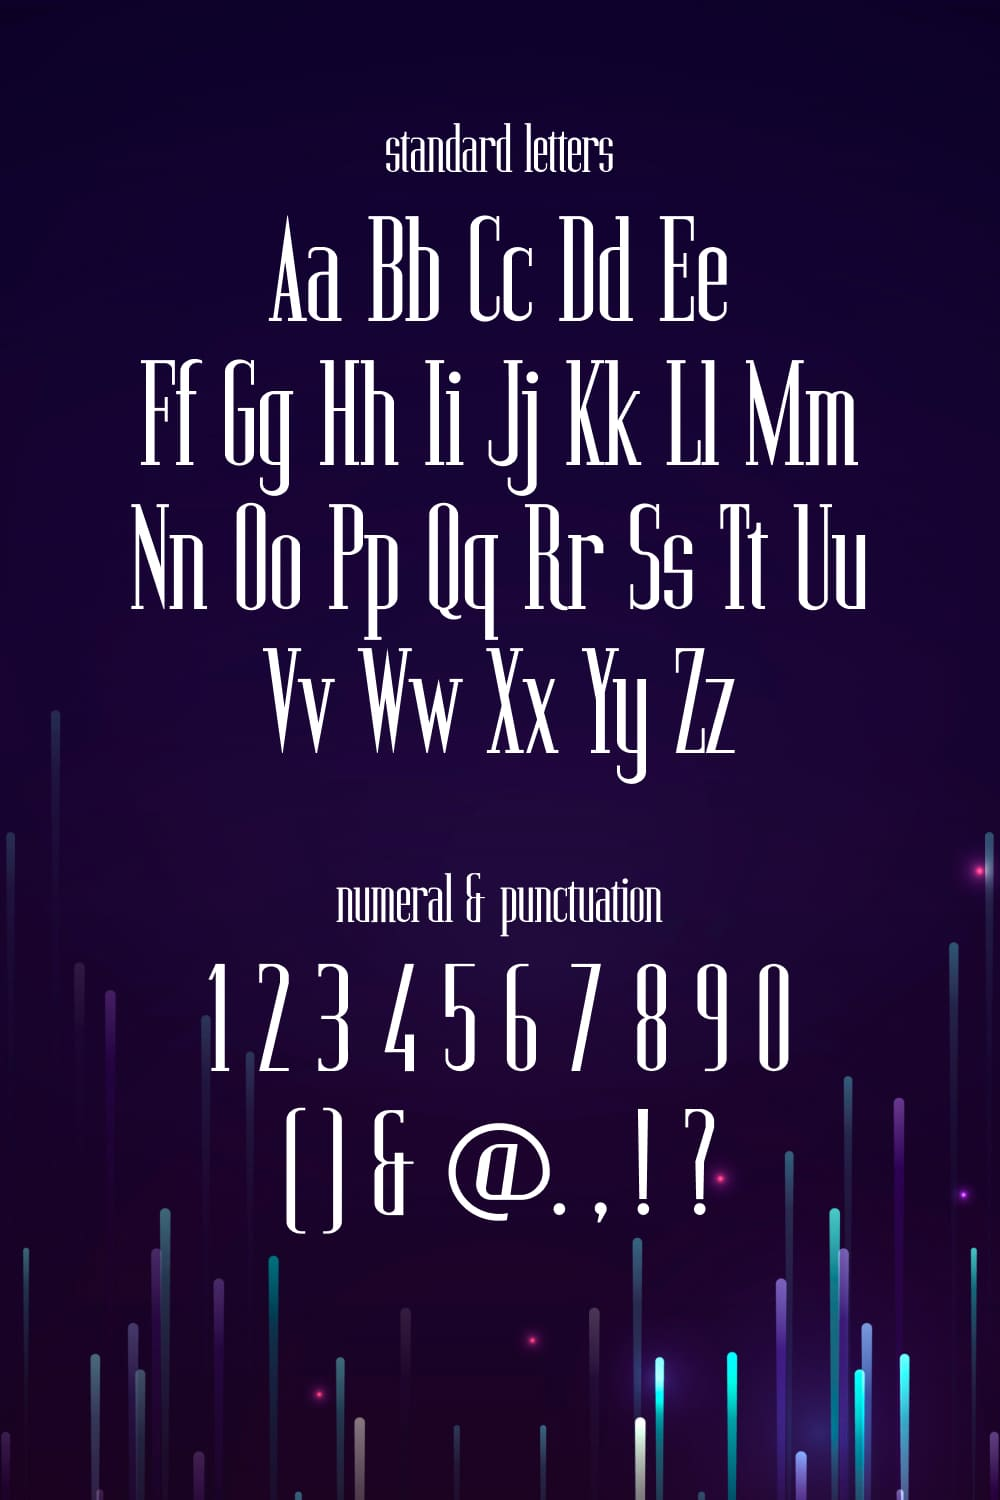 Standard letters of the Twinkling Monospaced Serif Font.